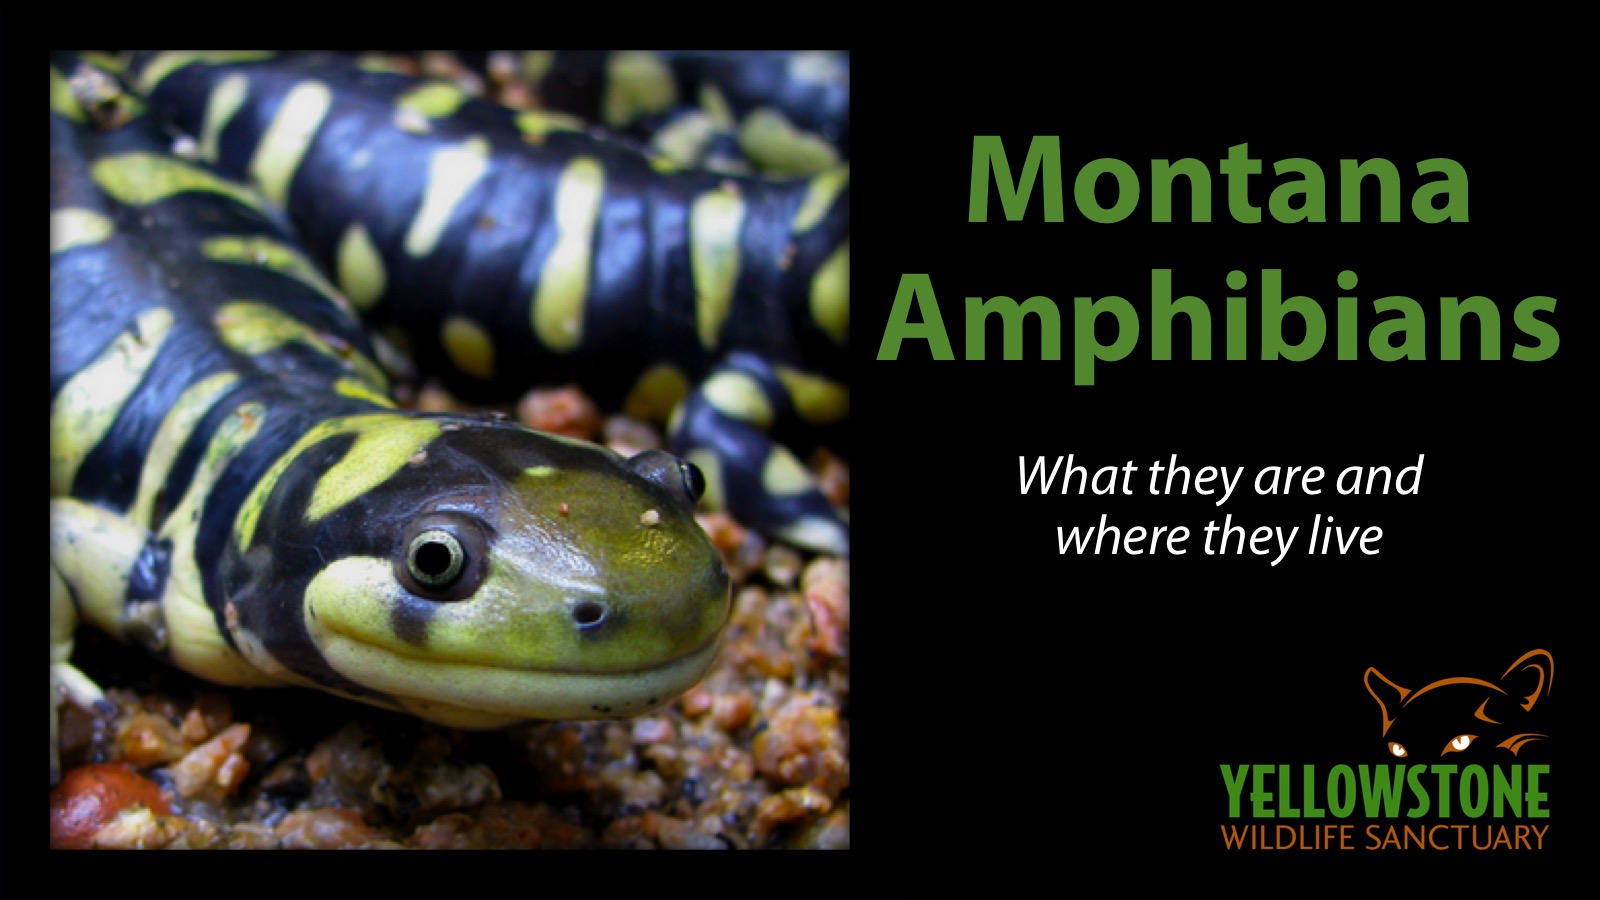 This is a companion class to the mammal and reptile classes. There aren't a lot of amphibians in Montana and Wyoming, but the ones we have are fascinating!